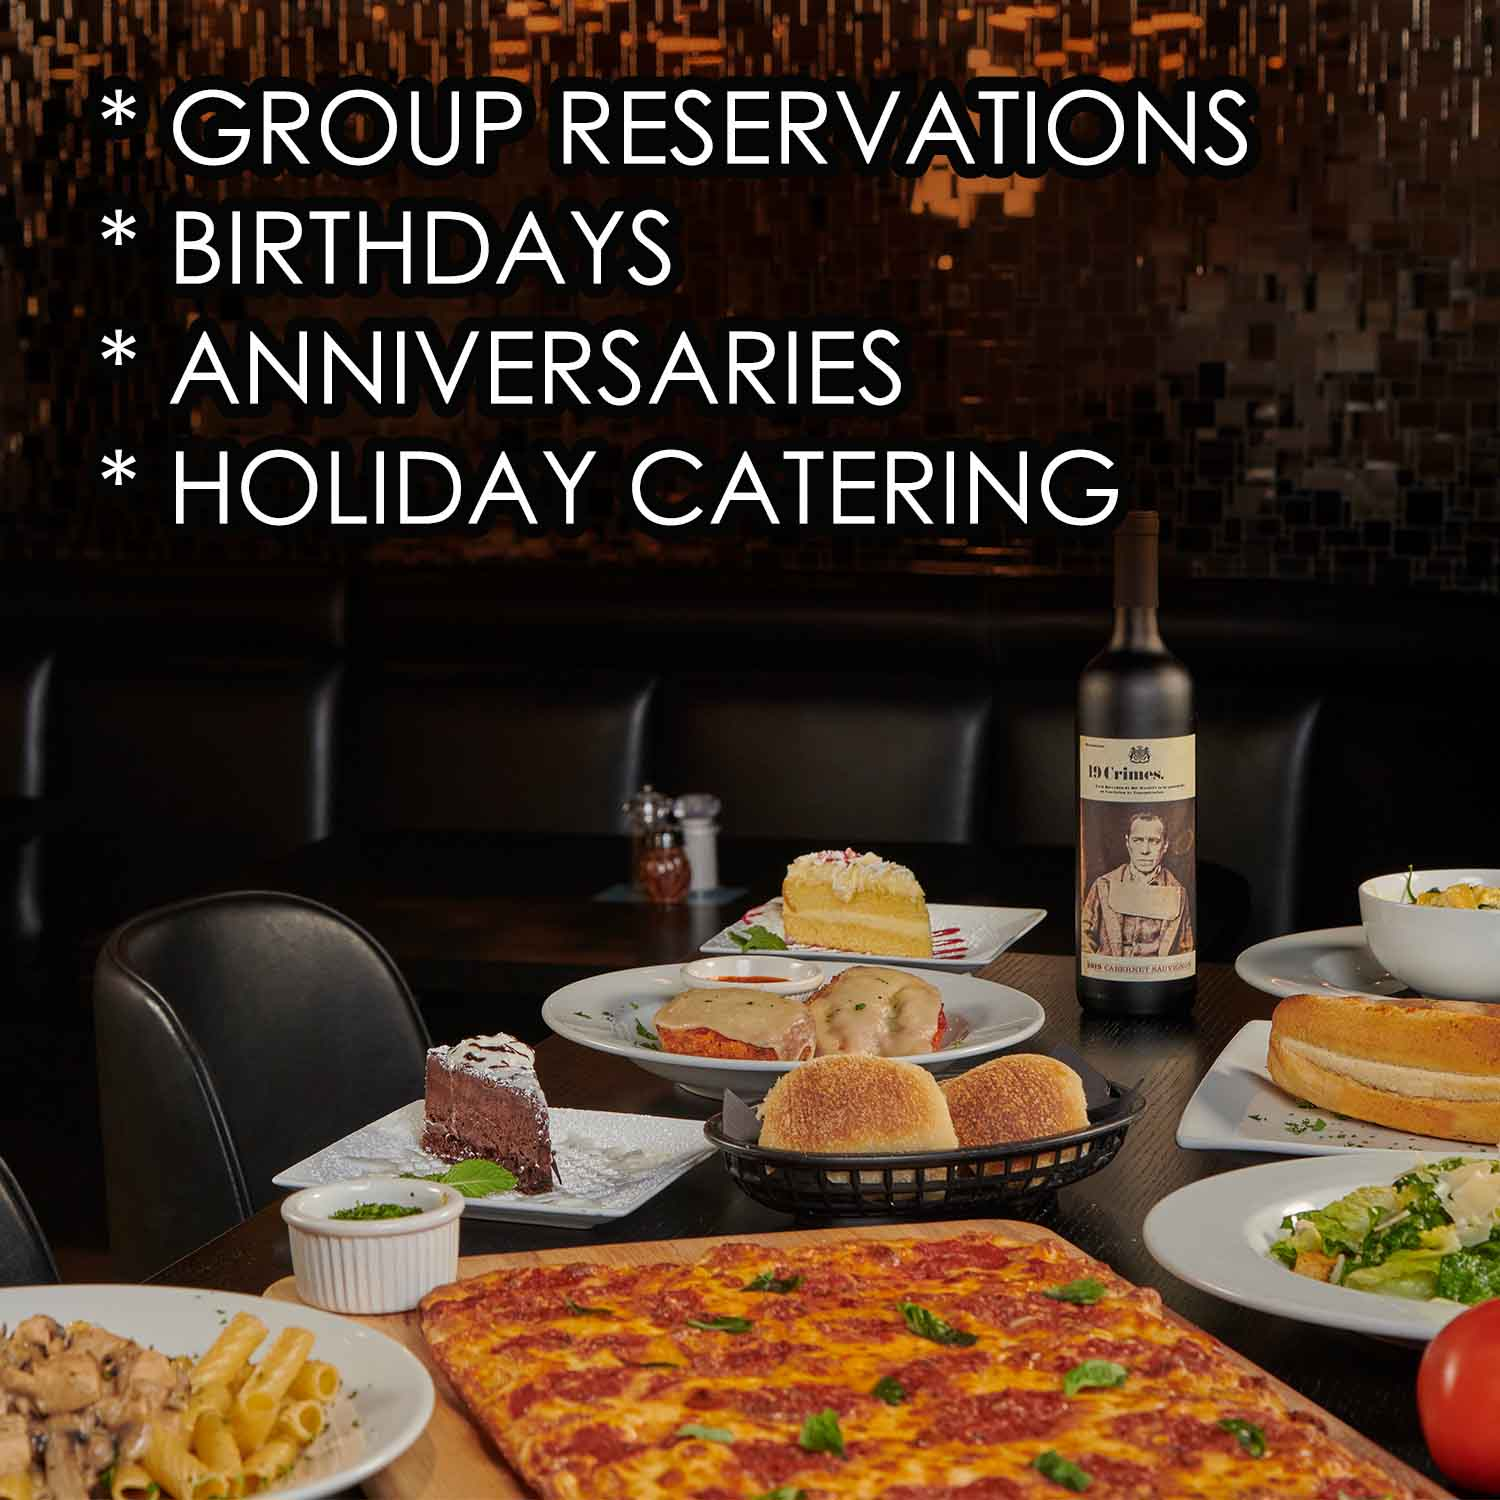 Anna Marie's holiday catering